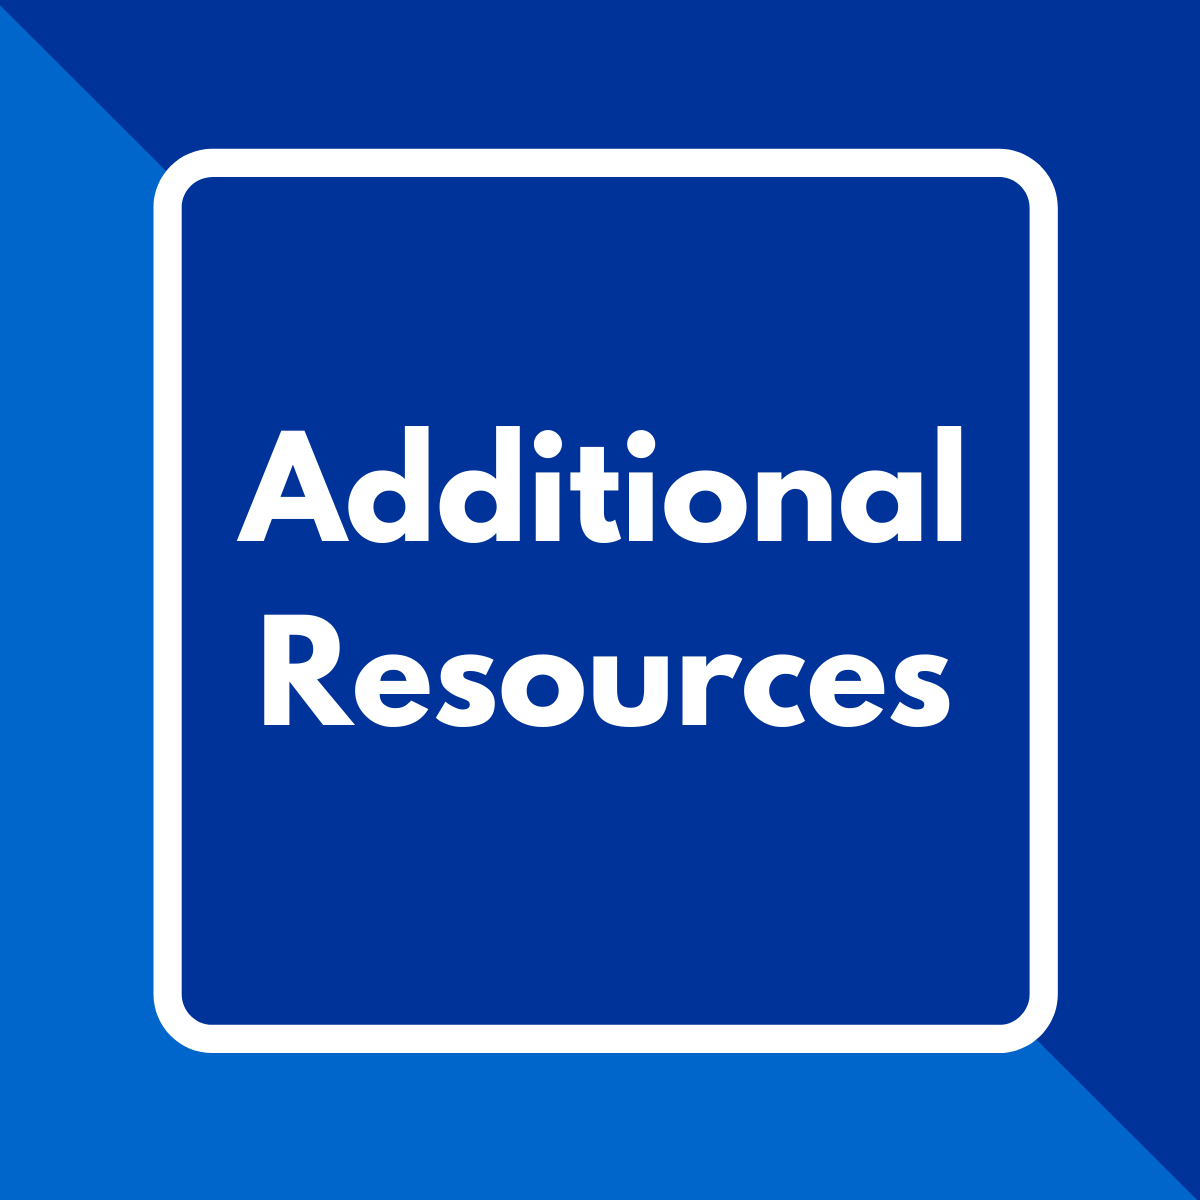 Additional (covid) resources